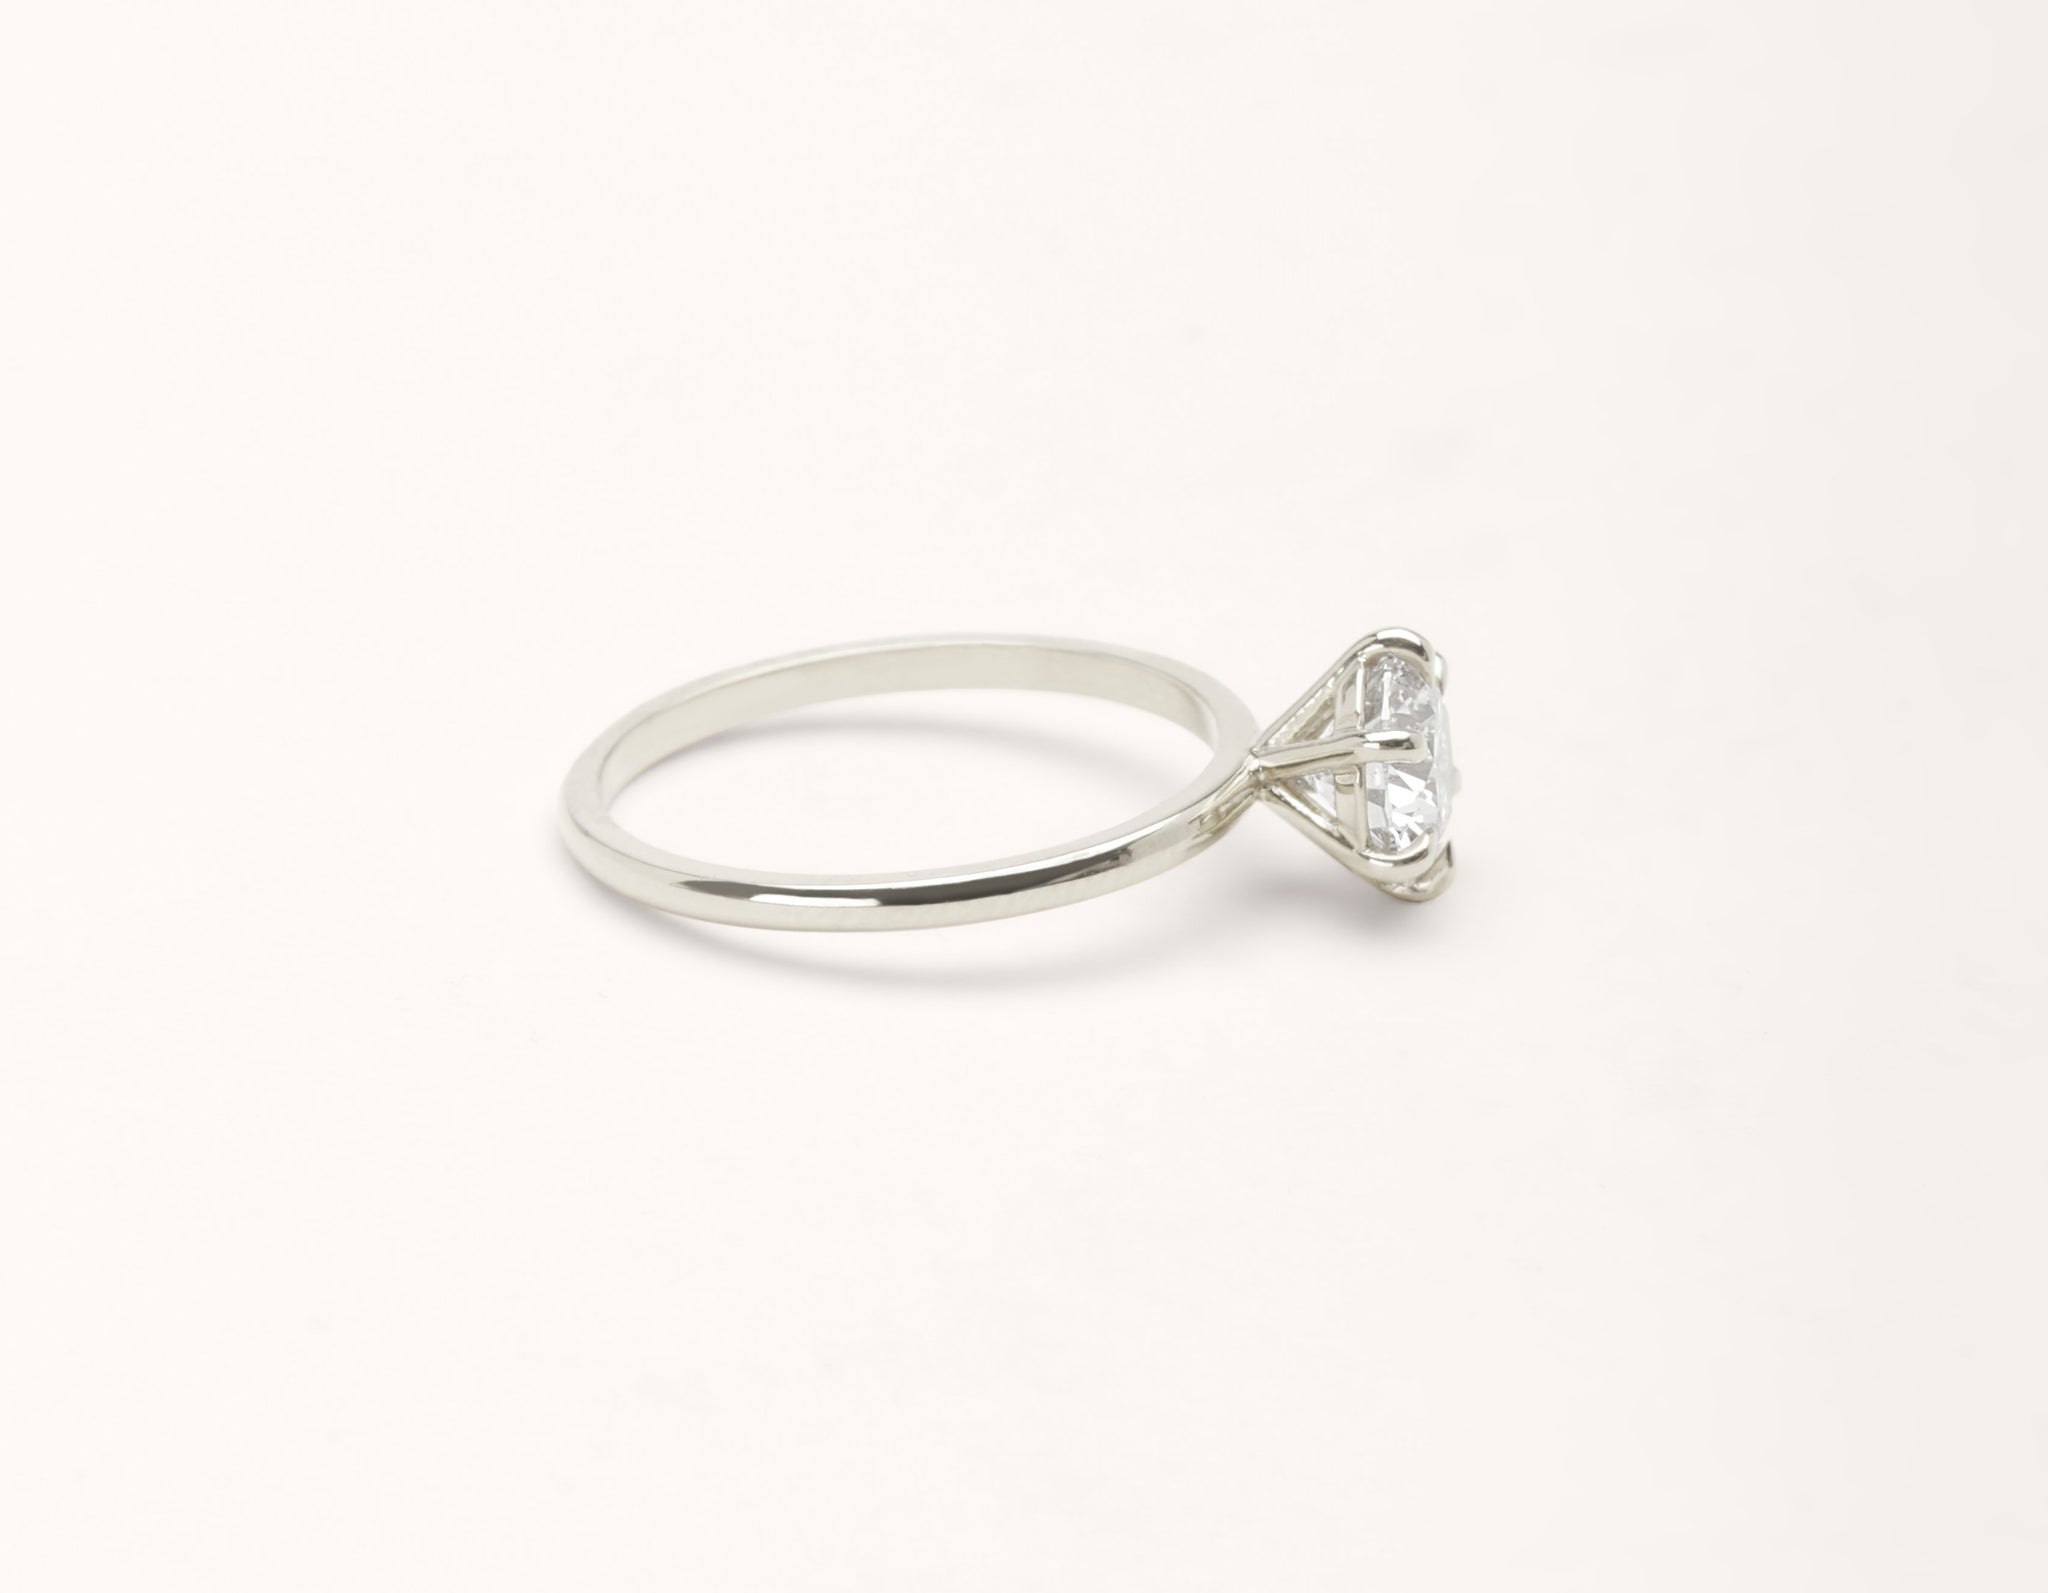 Simple modern 18k solid white gold 1 carat round brilliant Solitaire diamond engagement ring Vrai & Oro